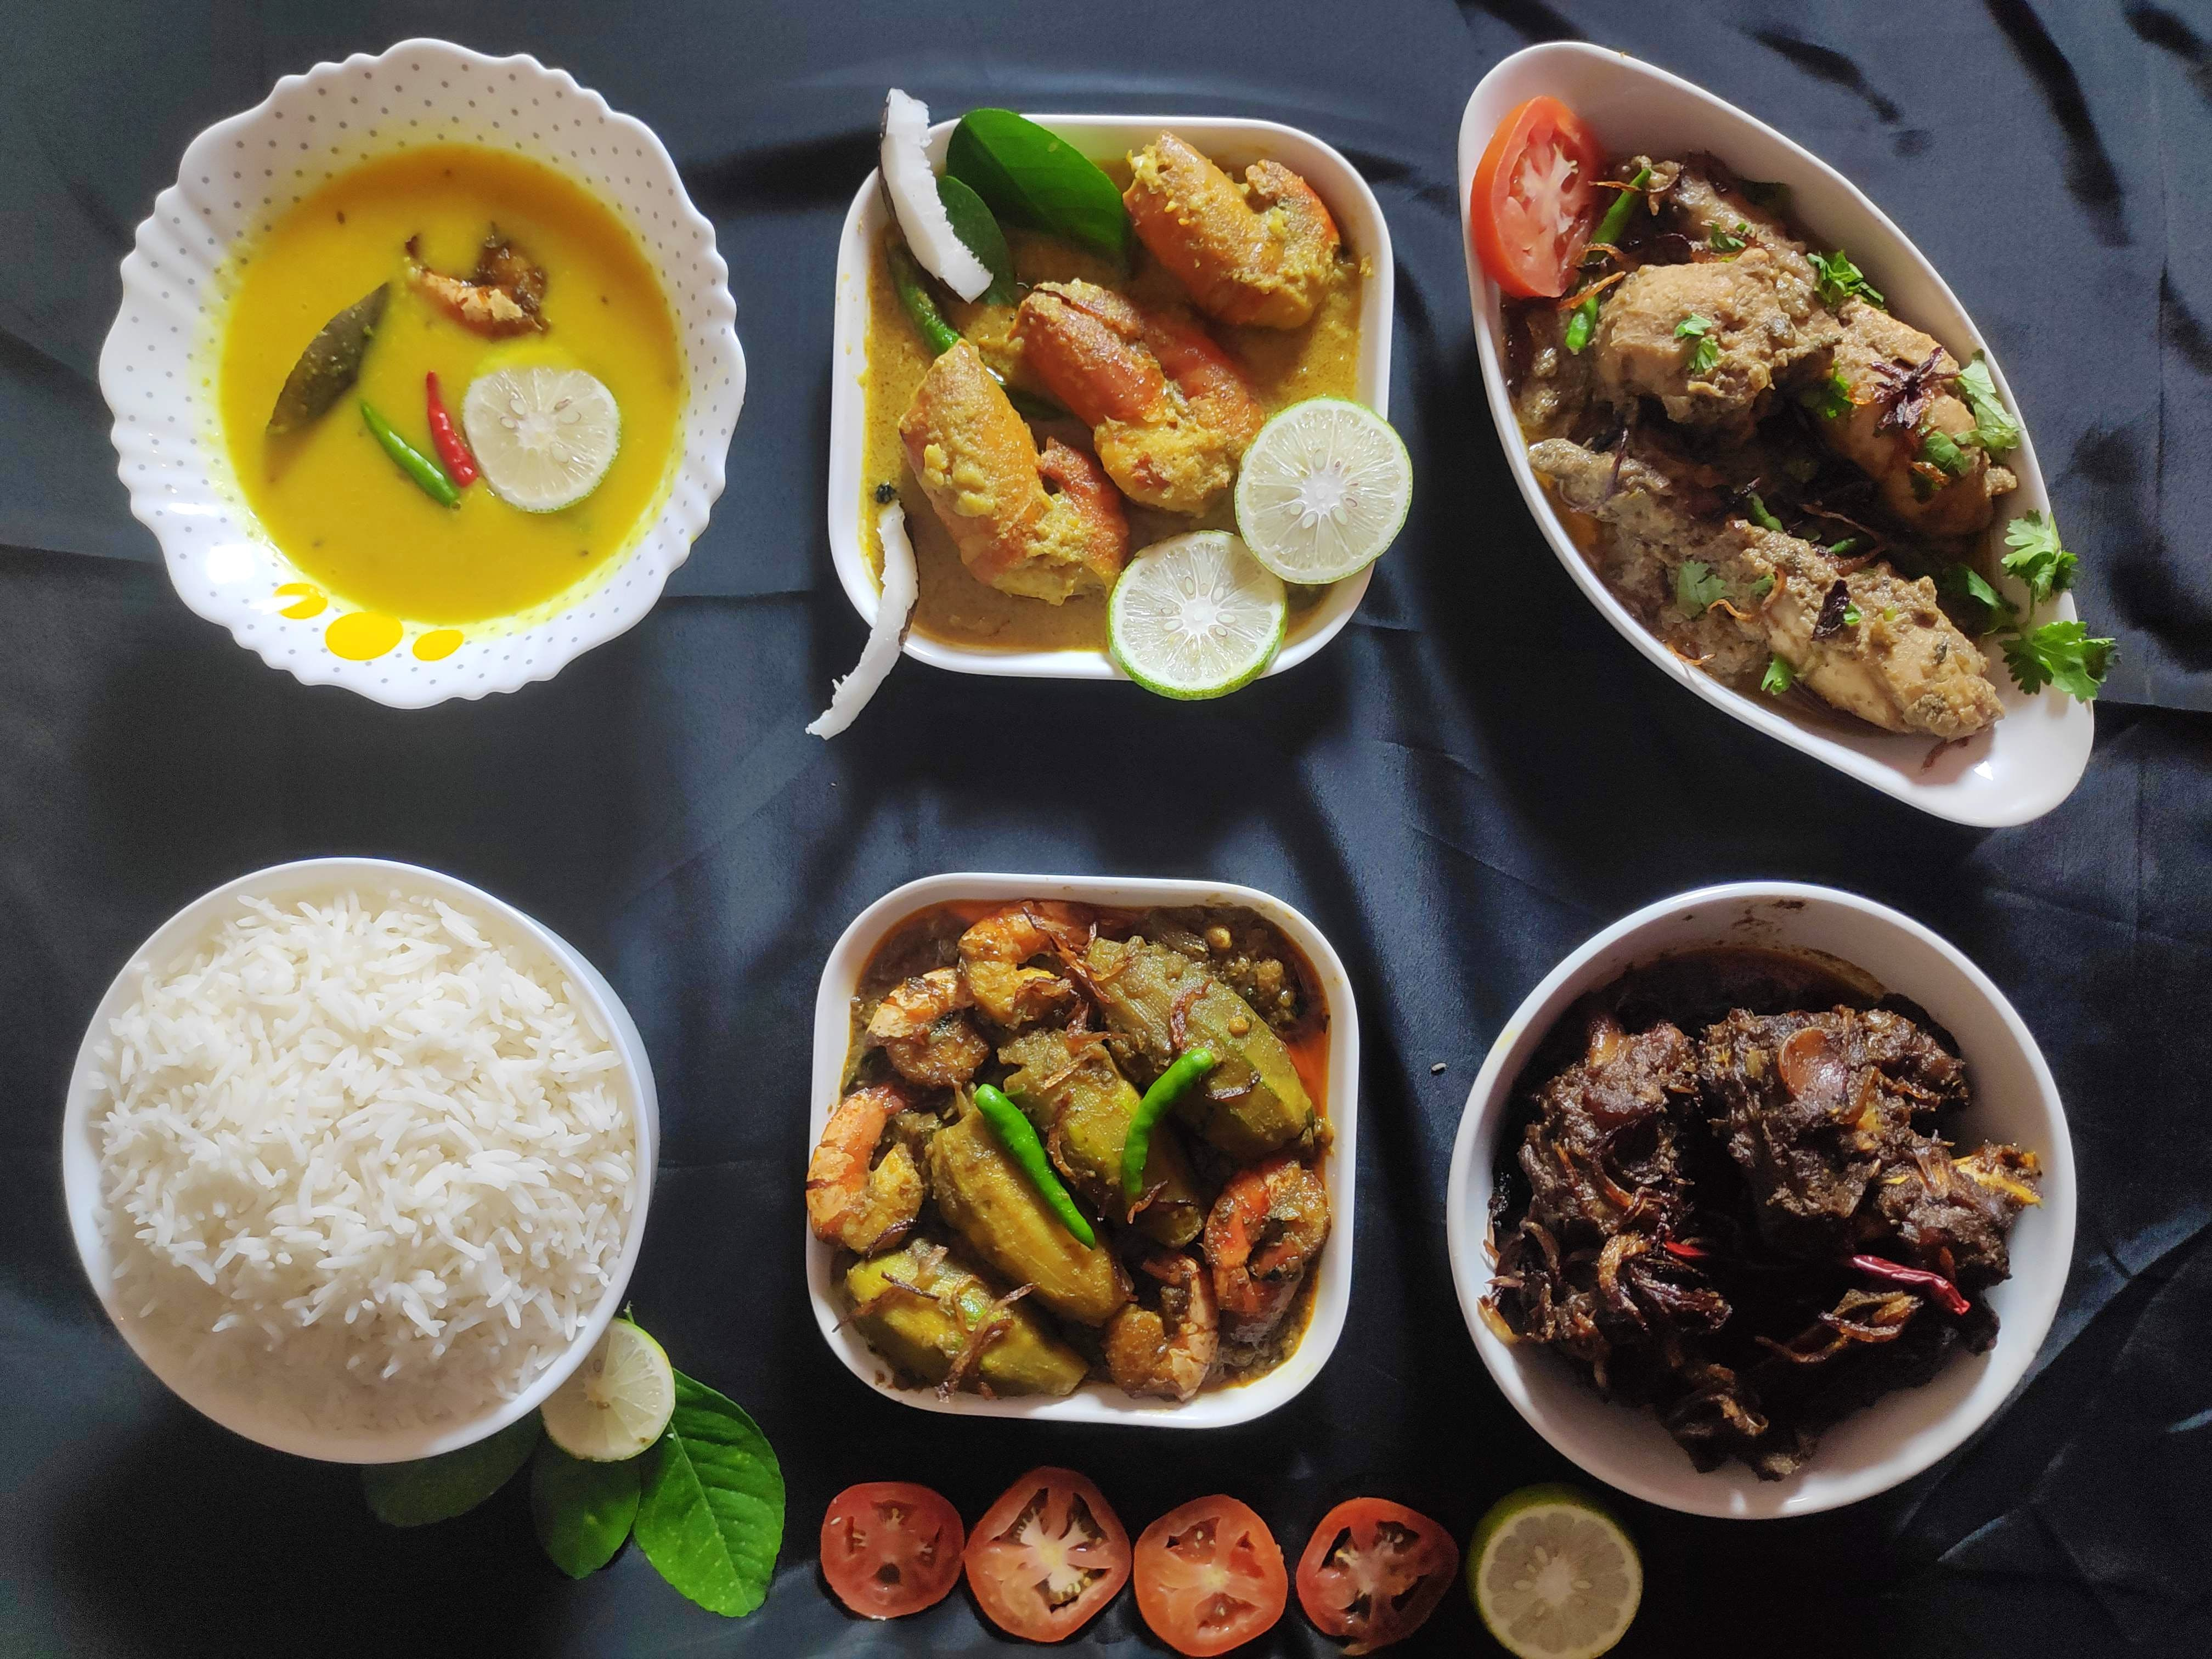 Dish,Food,Cuisine,Meal,Ingredient,Lunch,Steamed rice,Comfort food,Produce,Breakfast